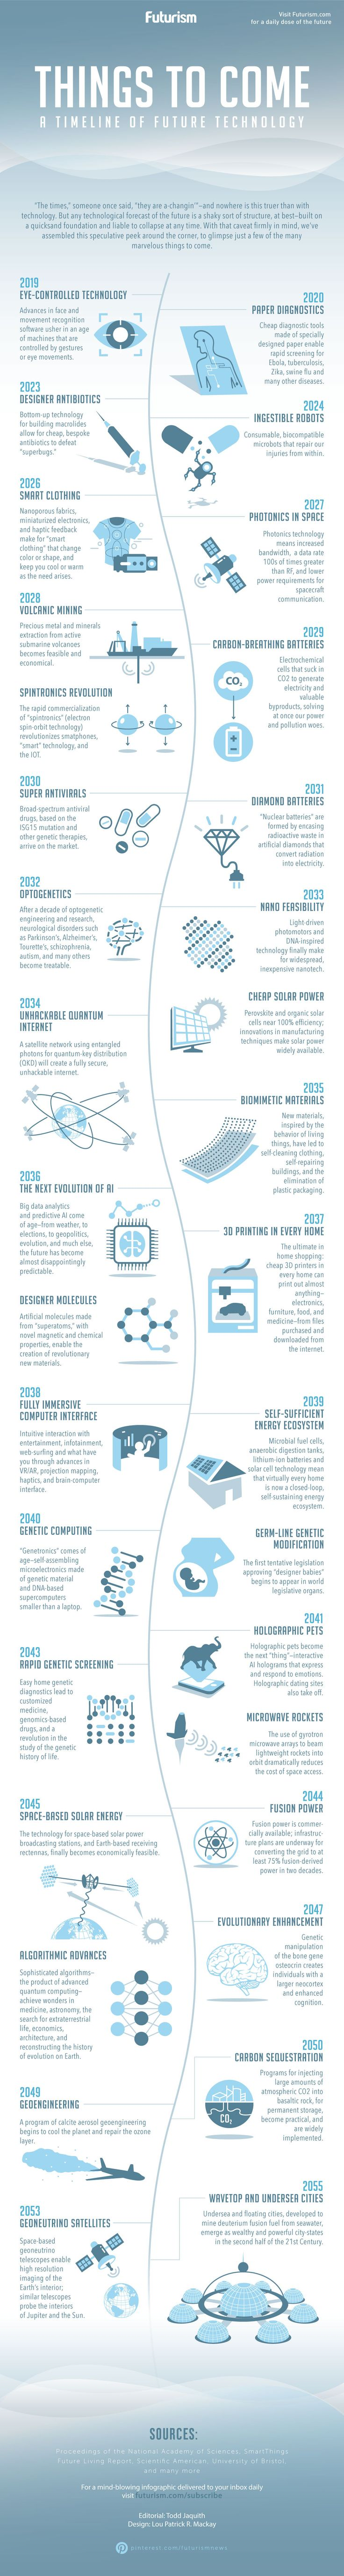 Designer antibodies, volcano mining, and biomimetic materials.  The future is wild.    https://futurism.com/images/things-to-come-a-timeline-of-future-technology-infographic/?utm_campaign=coschedule&utm_source=pinterest&utm_medium=Futurism&utm_content=Things%20to%20Come%3A%20A%20Timeline%20of%20Future%20Technology%20%5BINFOGRAPHIC%5D